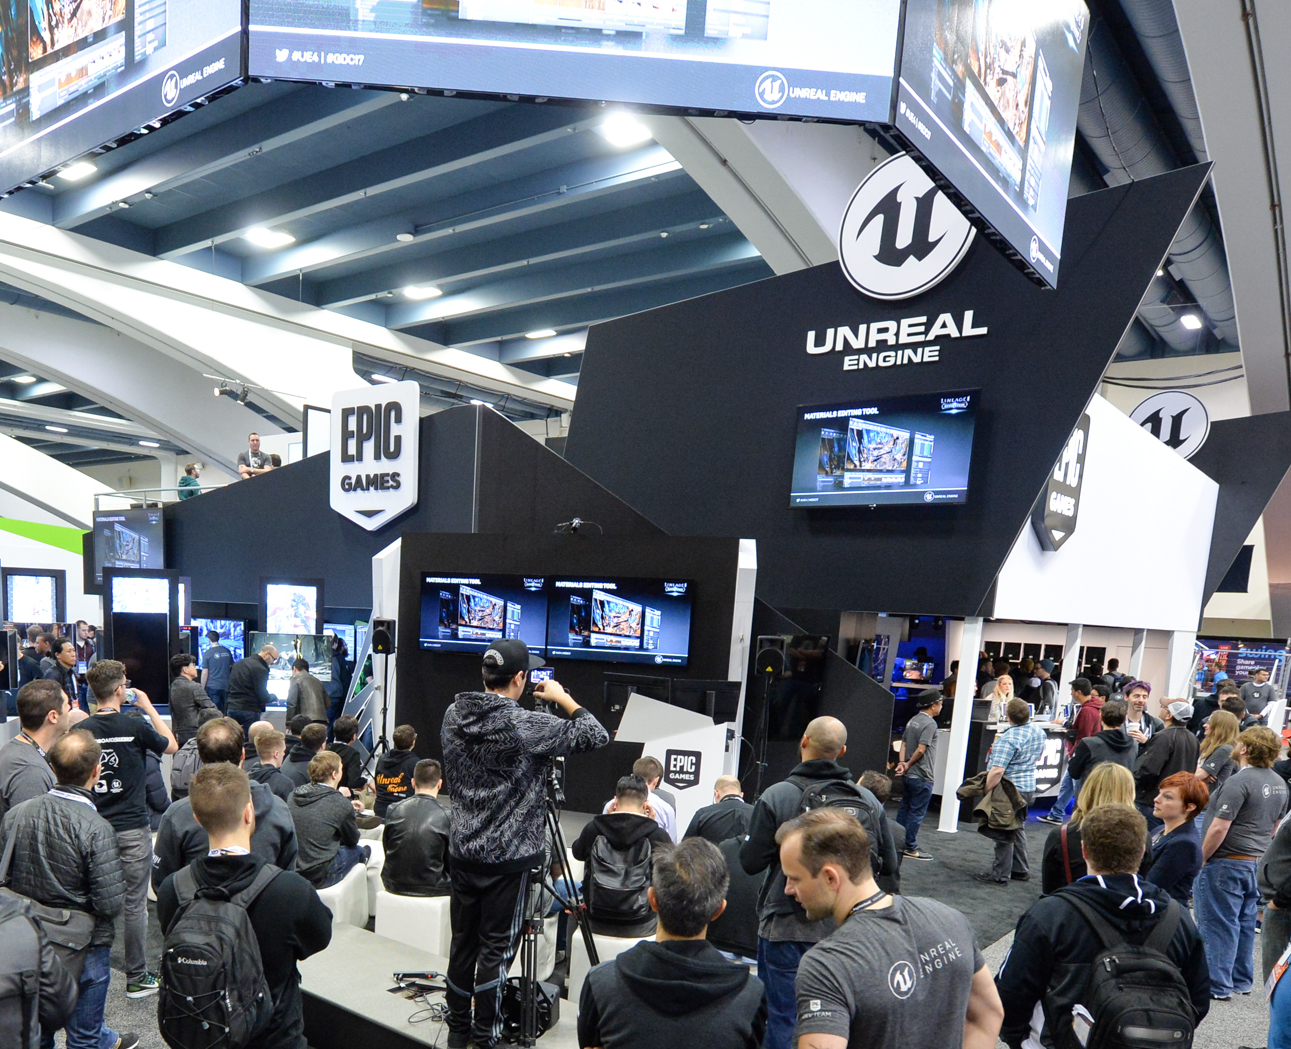 File:Unreal Engine booth (cropped) jpg - Wikimedia Commons